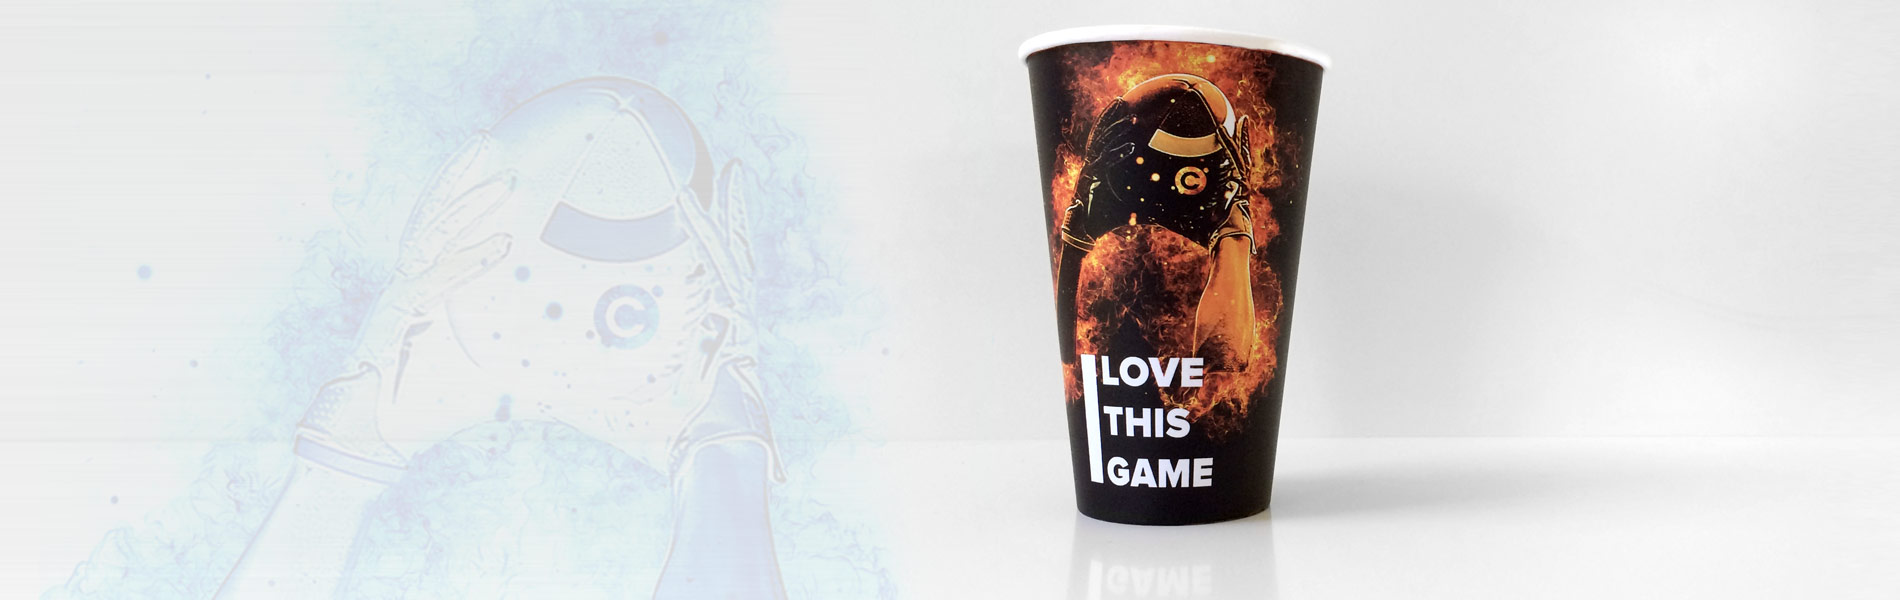 Cup Printing Excellence - Give Your Customers Some WOW Factor